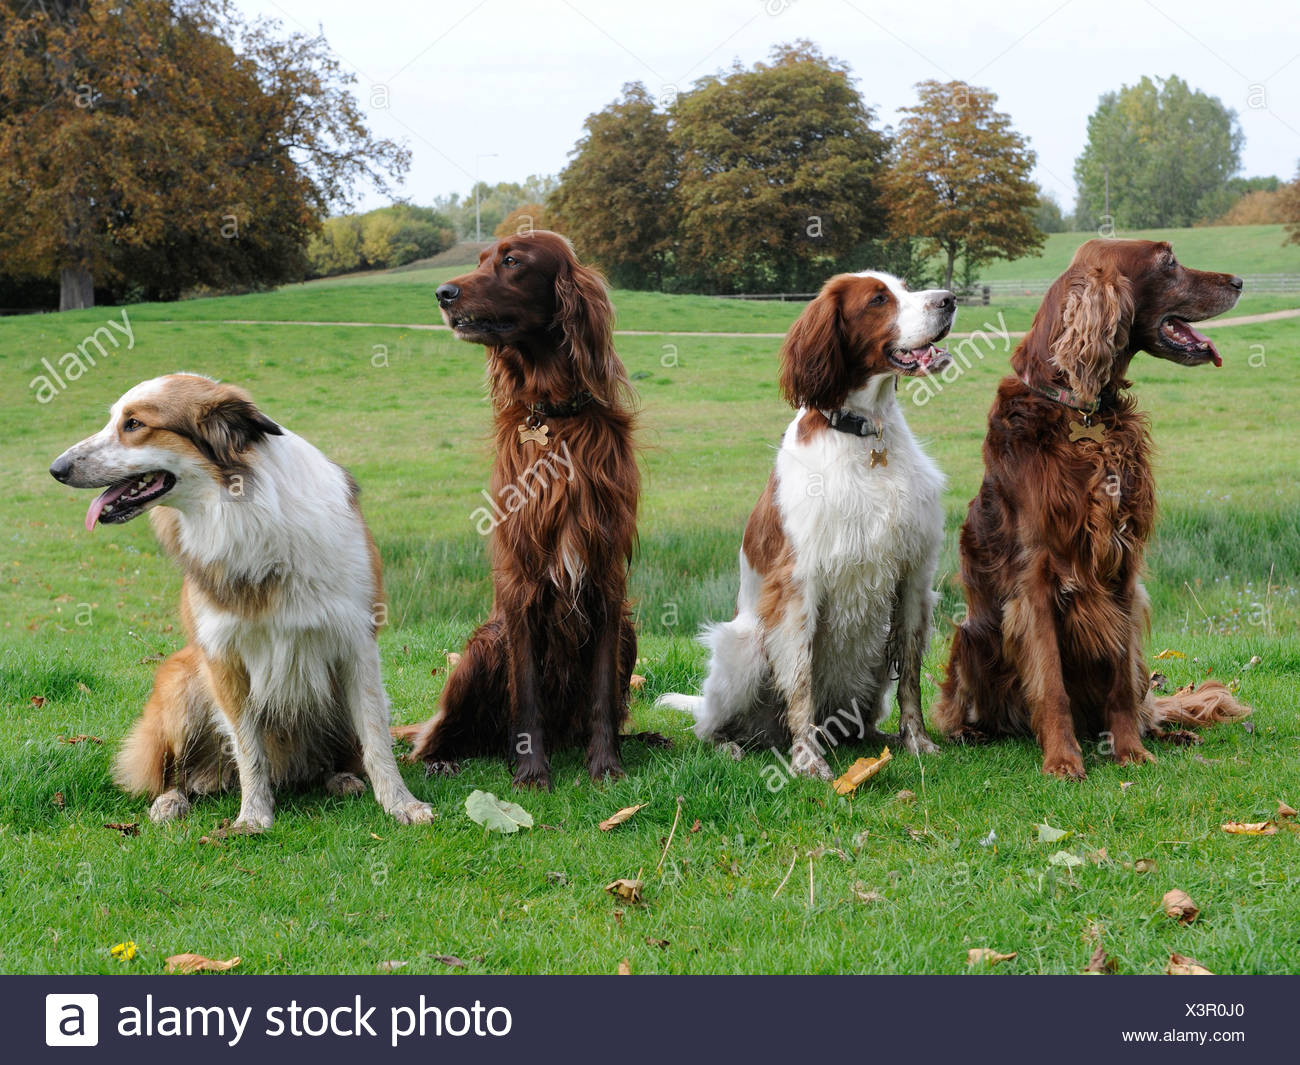 A group of dogs that are not obedient and are looking in different directions - Stock Image